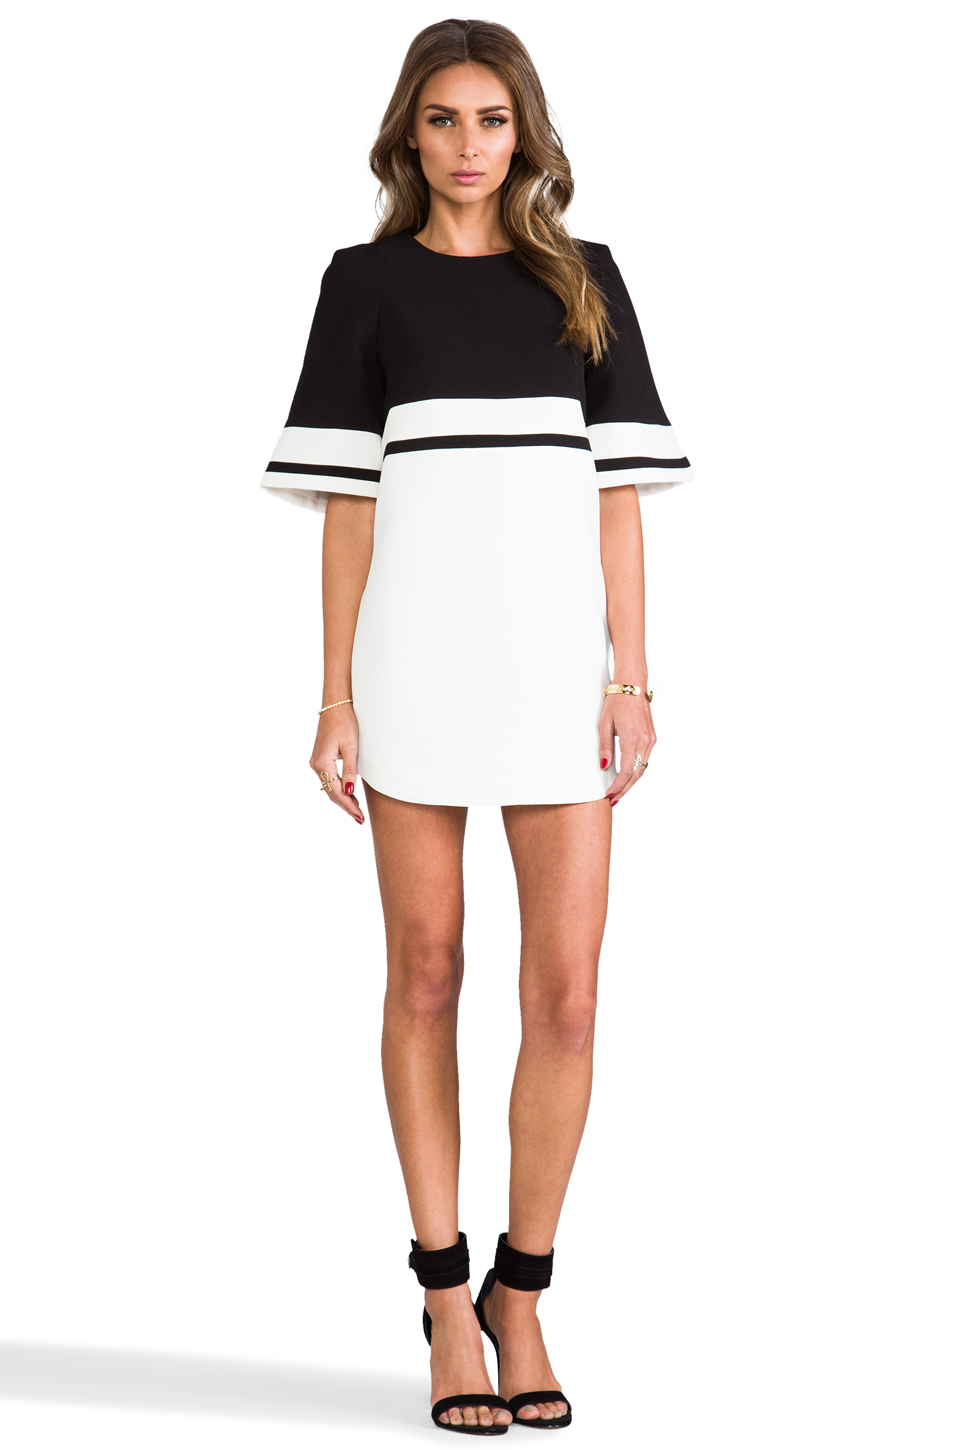 Cameo we are young dress in black/white from revolveclothing.com